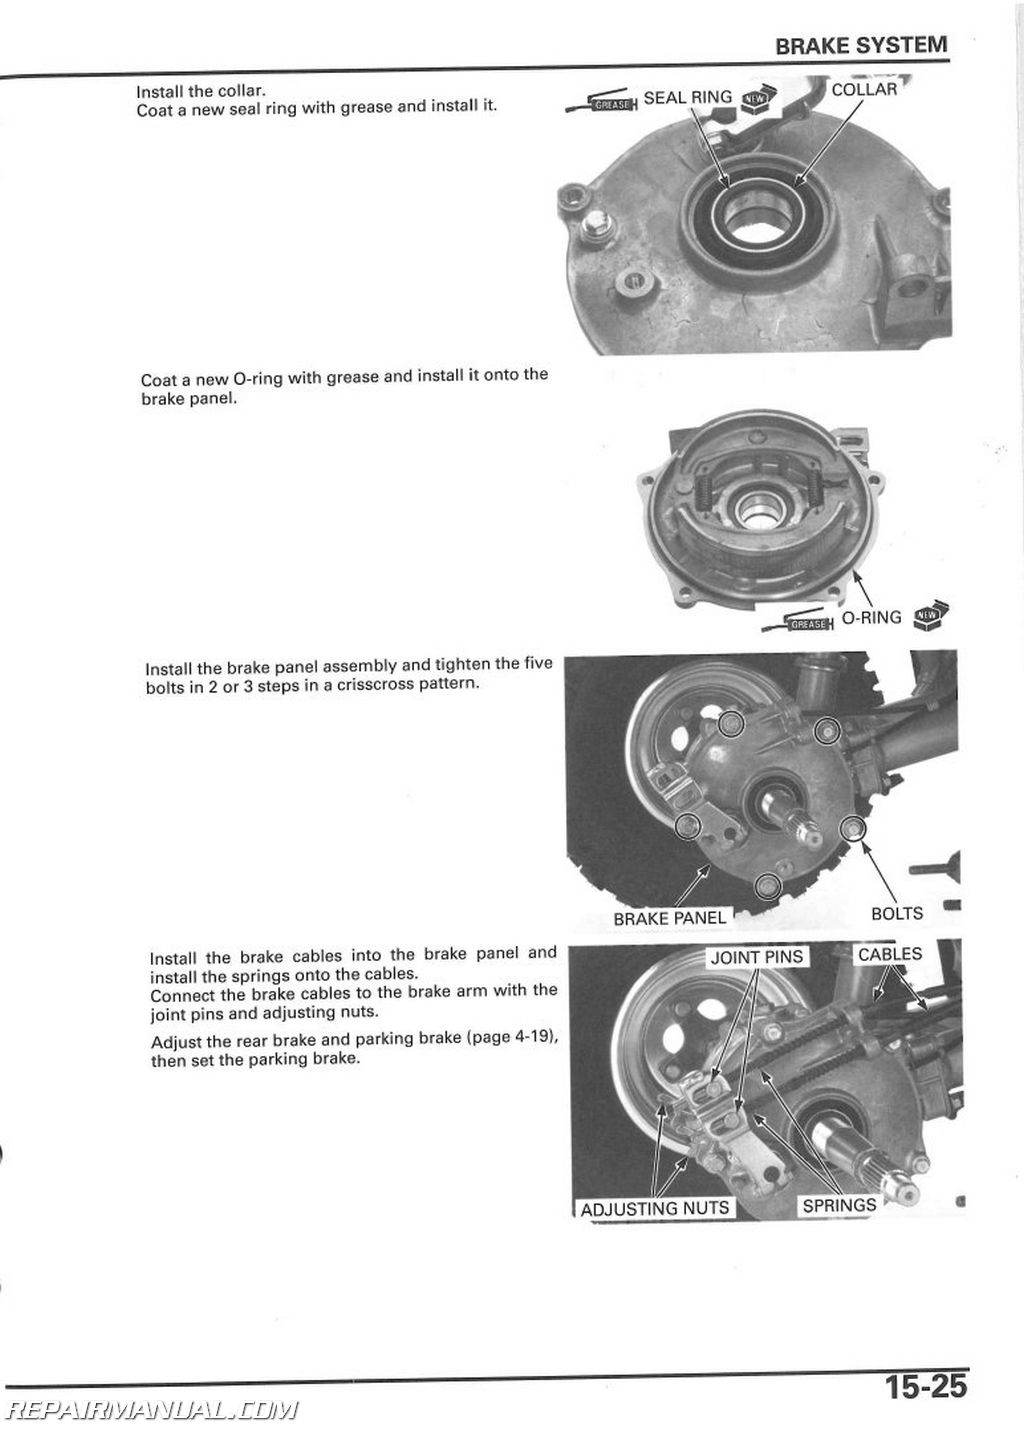 03 honda pilot engine diagram 2006-2014 honda trx250ex x sportrax service manual ...